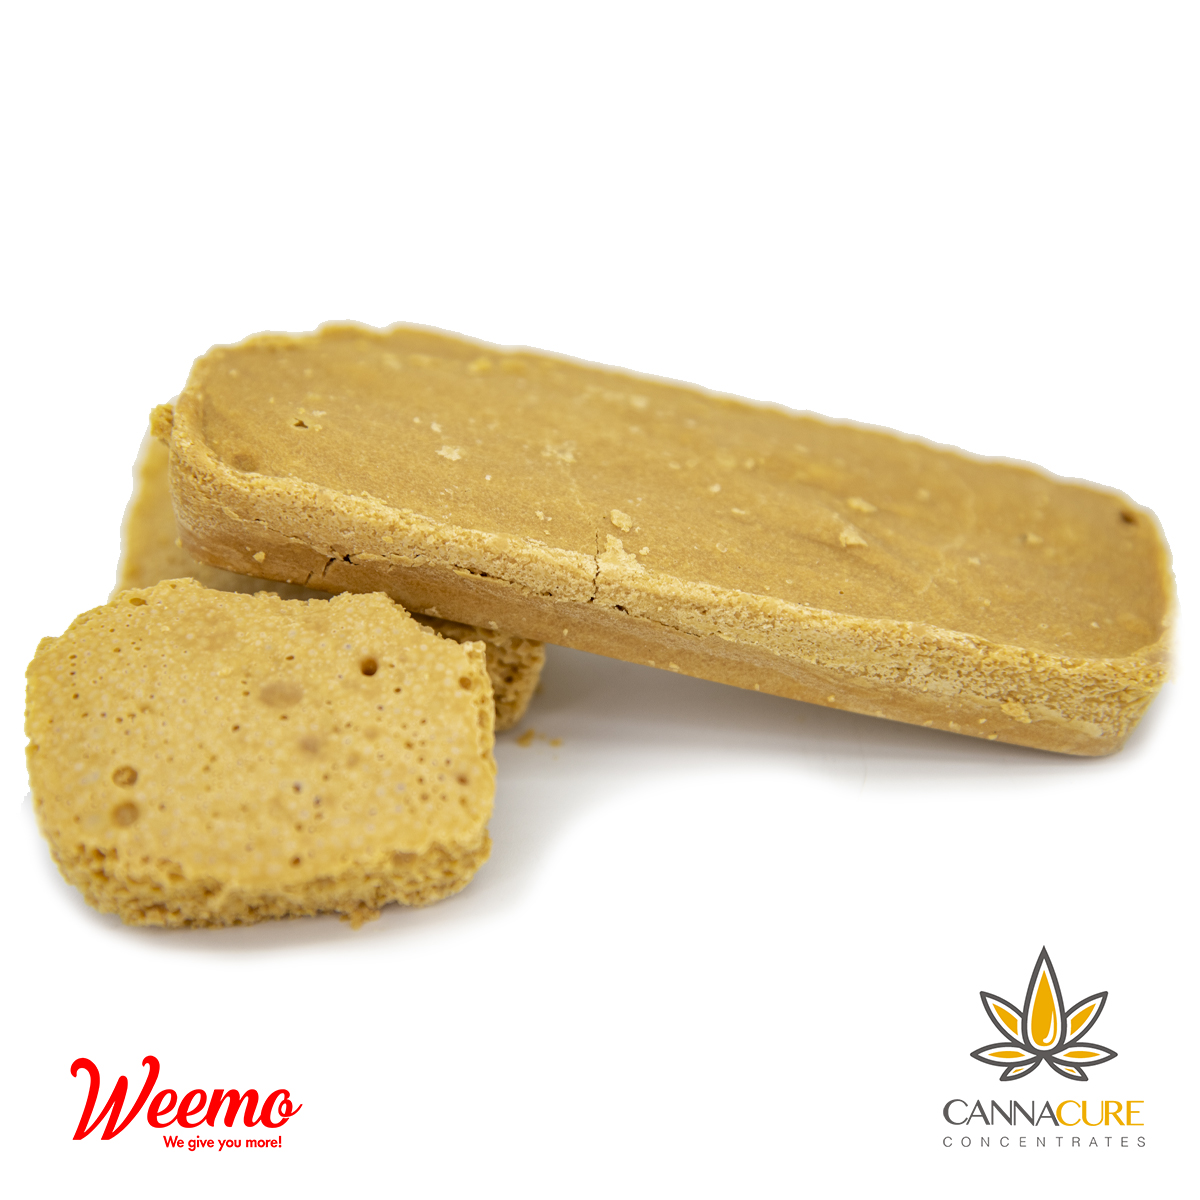 Cannacure Budder by Weemo - Image © 2020 Weemo. All Rights Reserved.